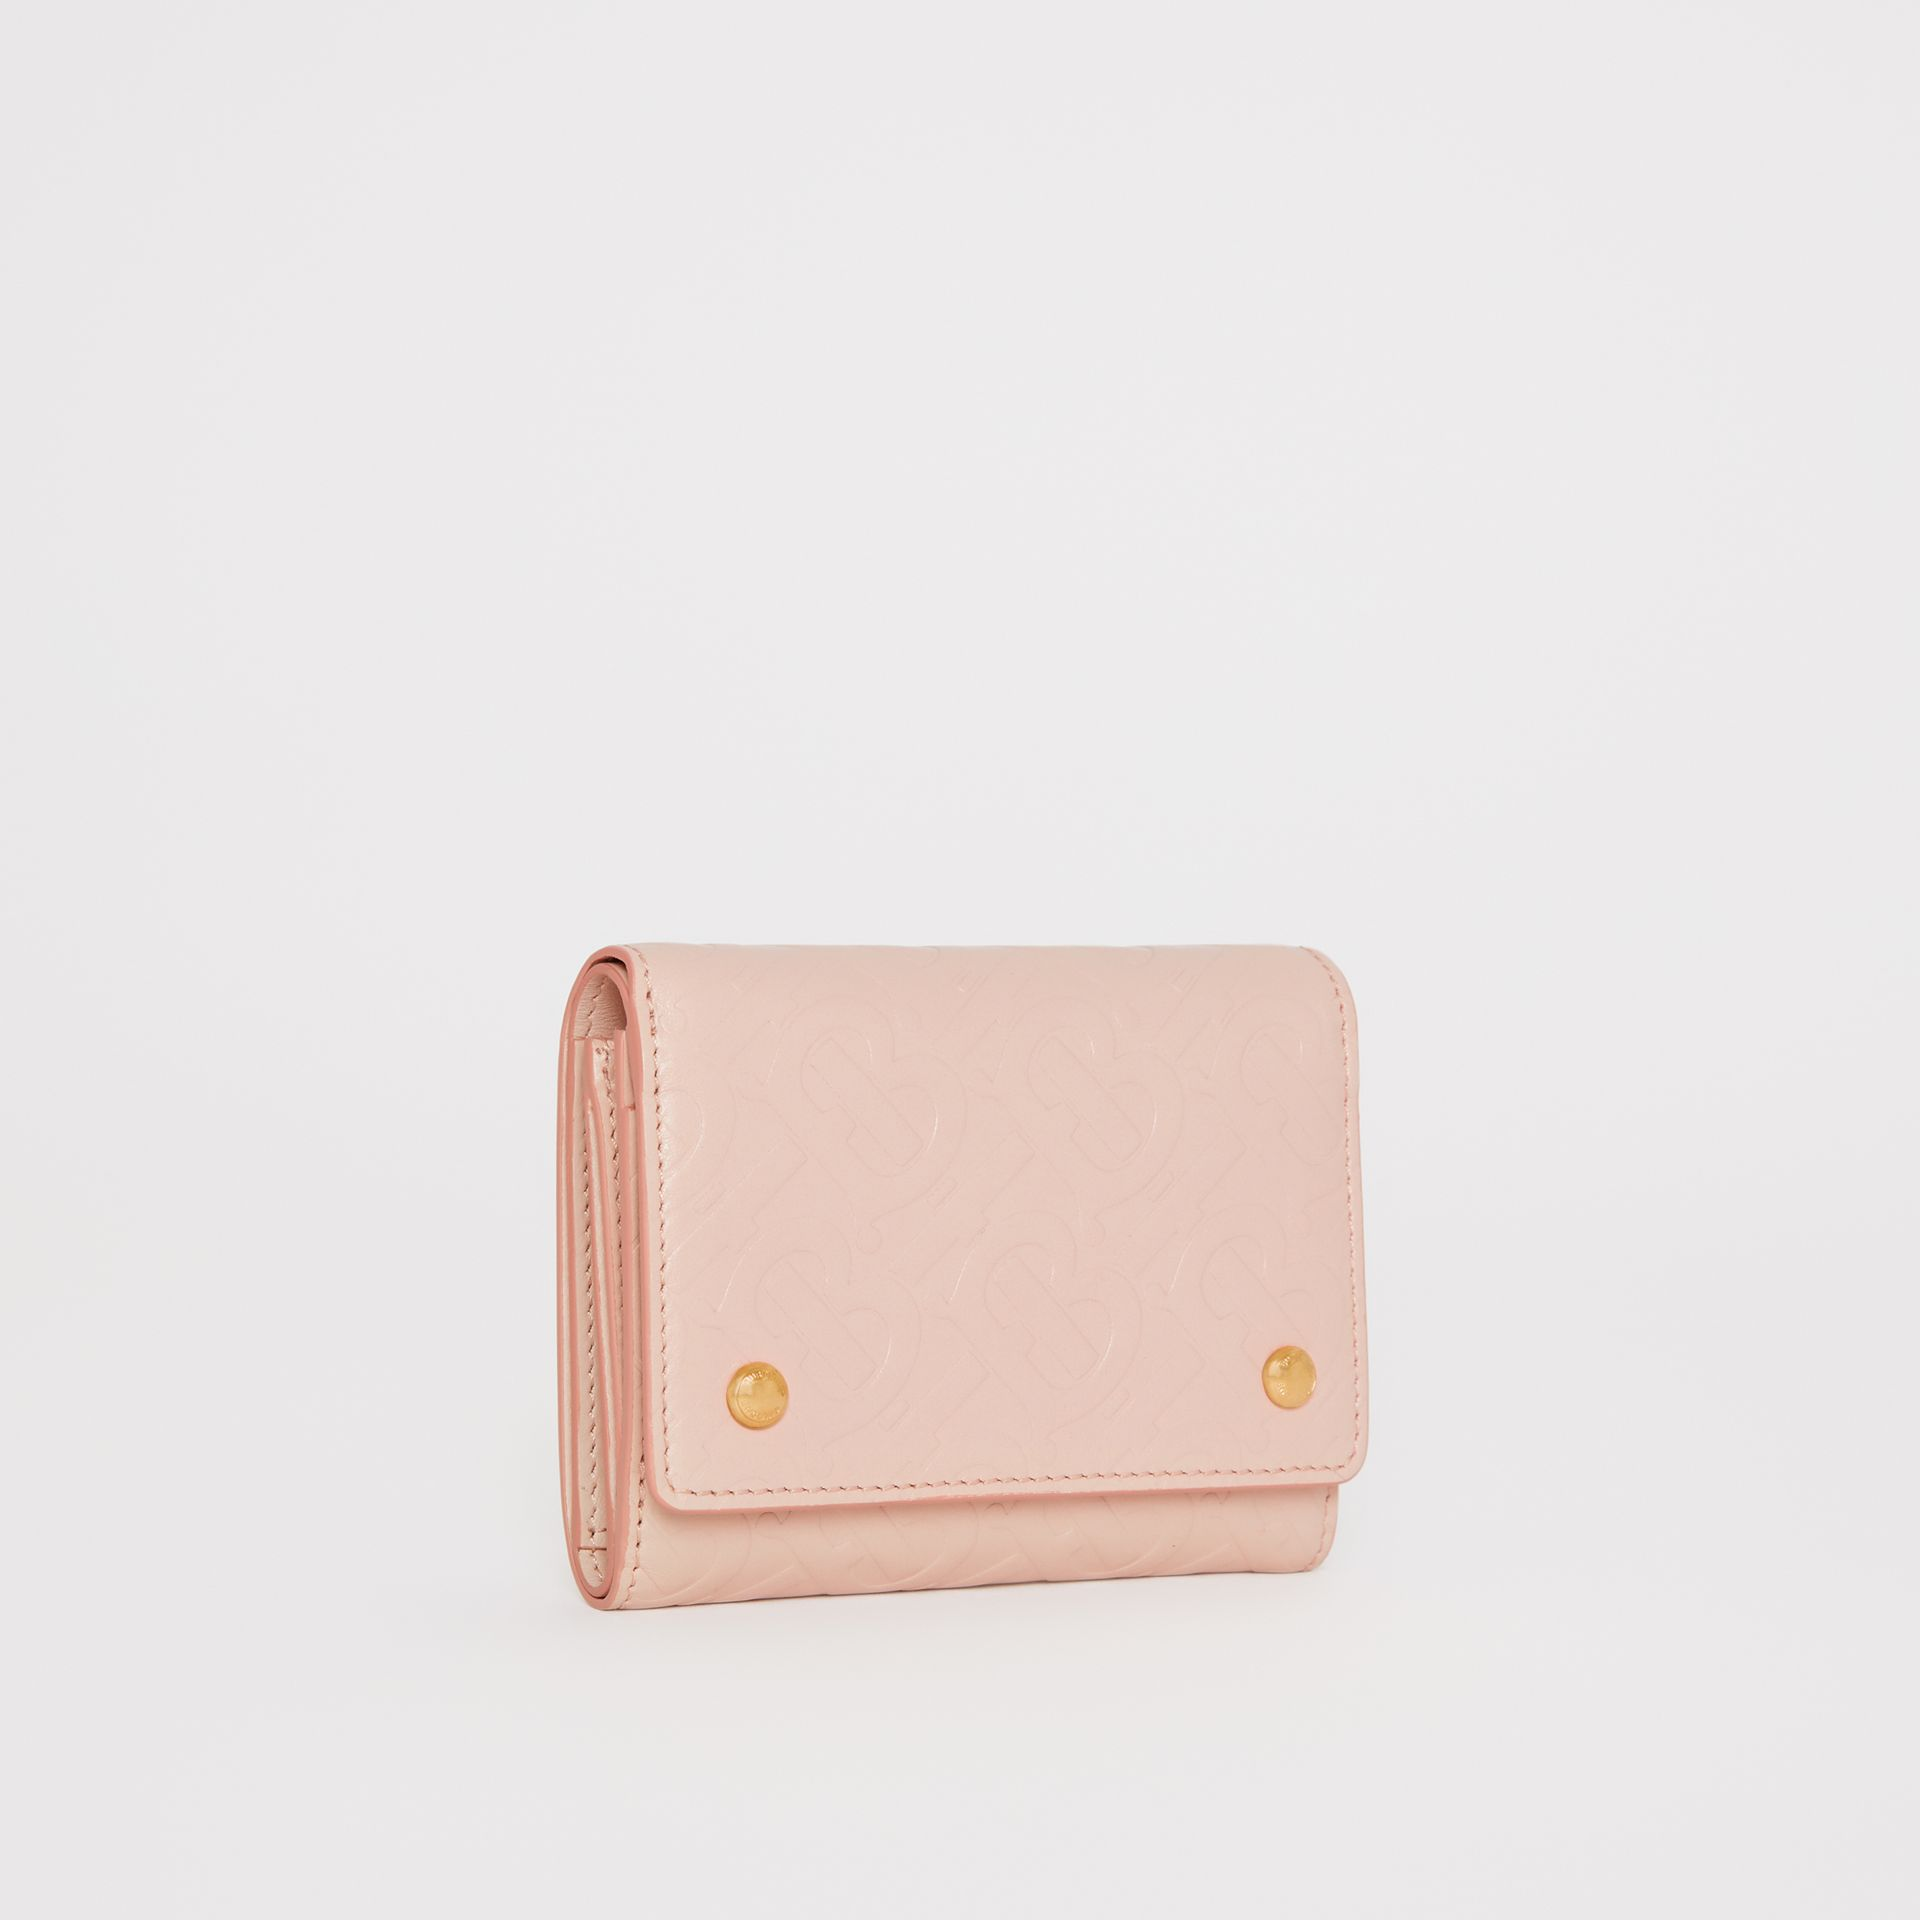 Small Monogram Leather Folding Wallet in Rose Beige | Burberry United Kingdom - gallery image 3